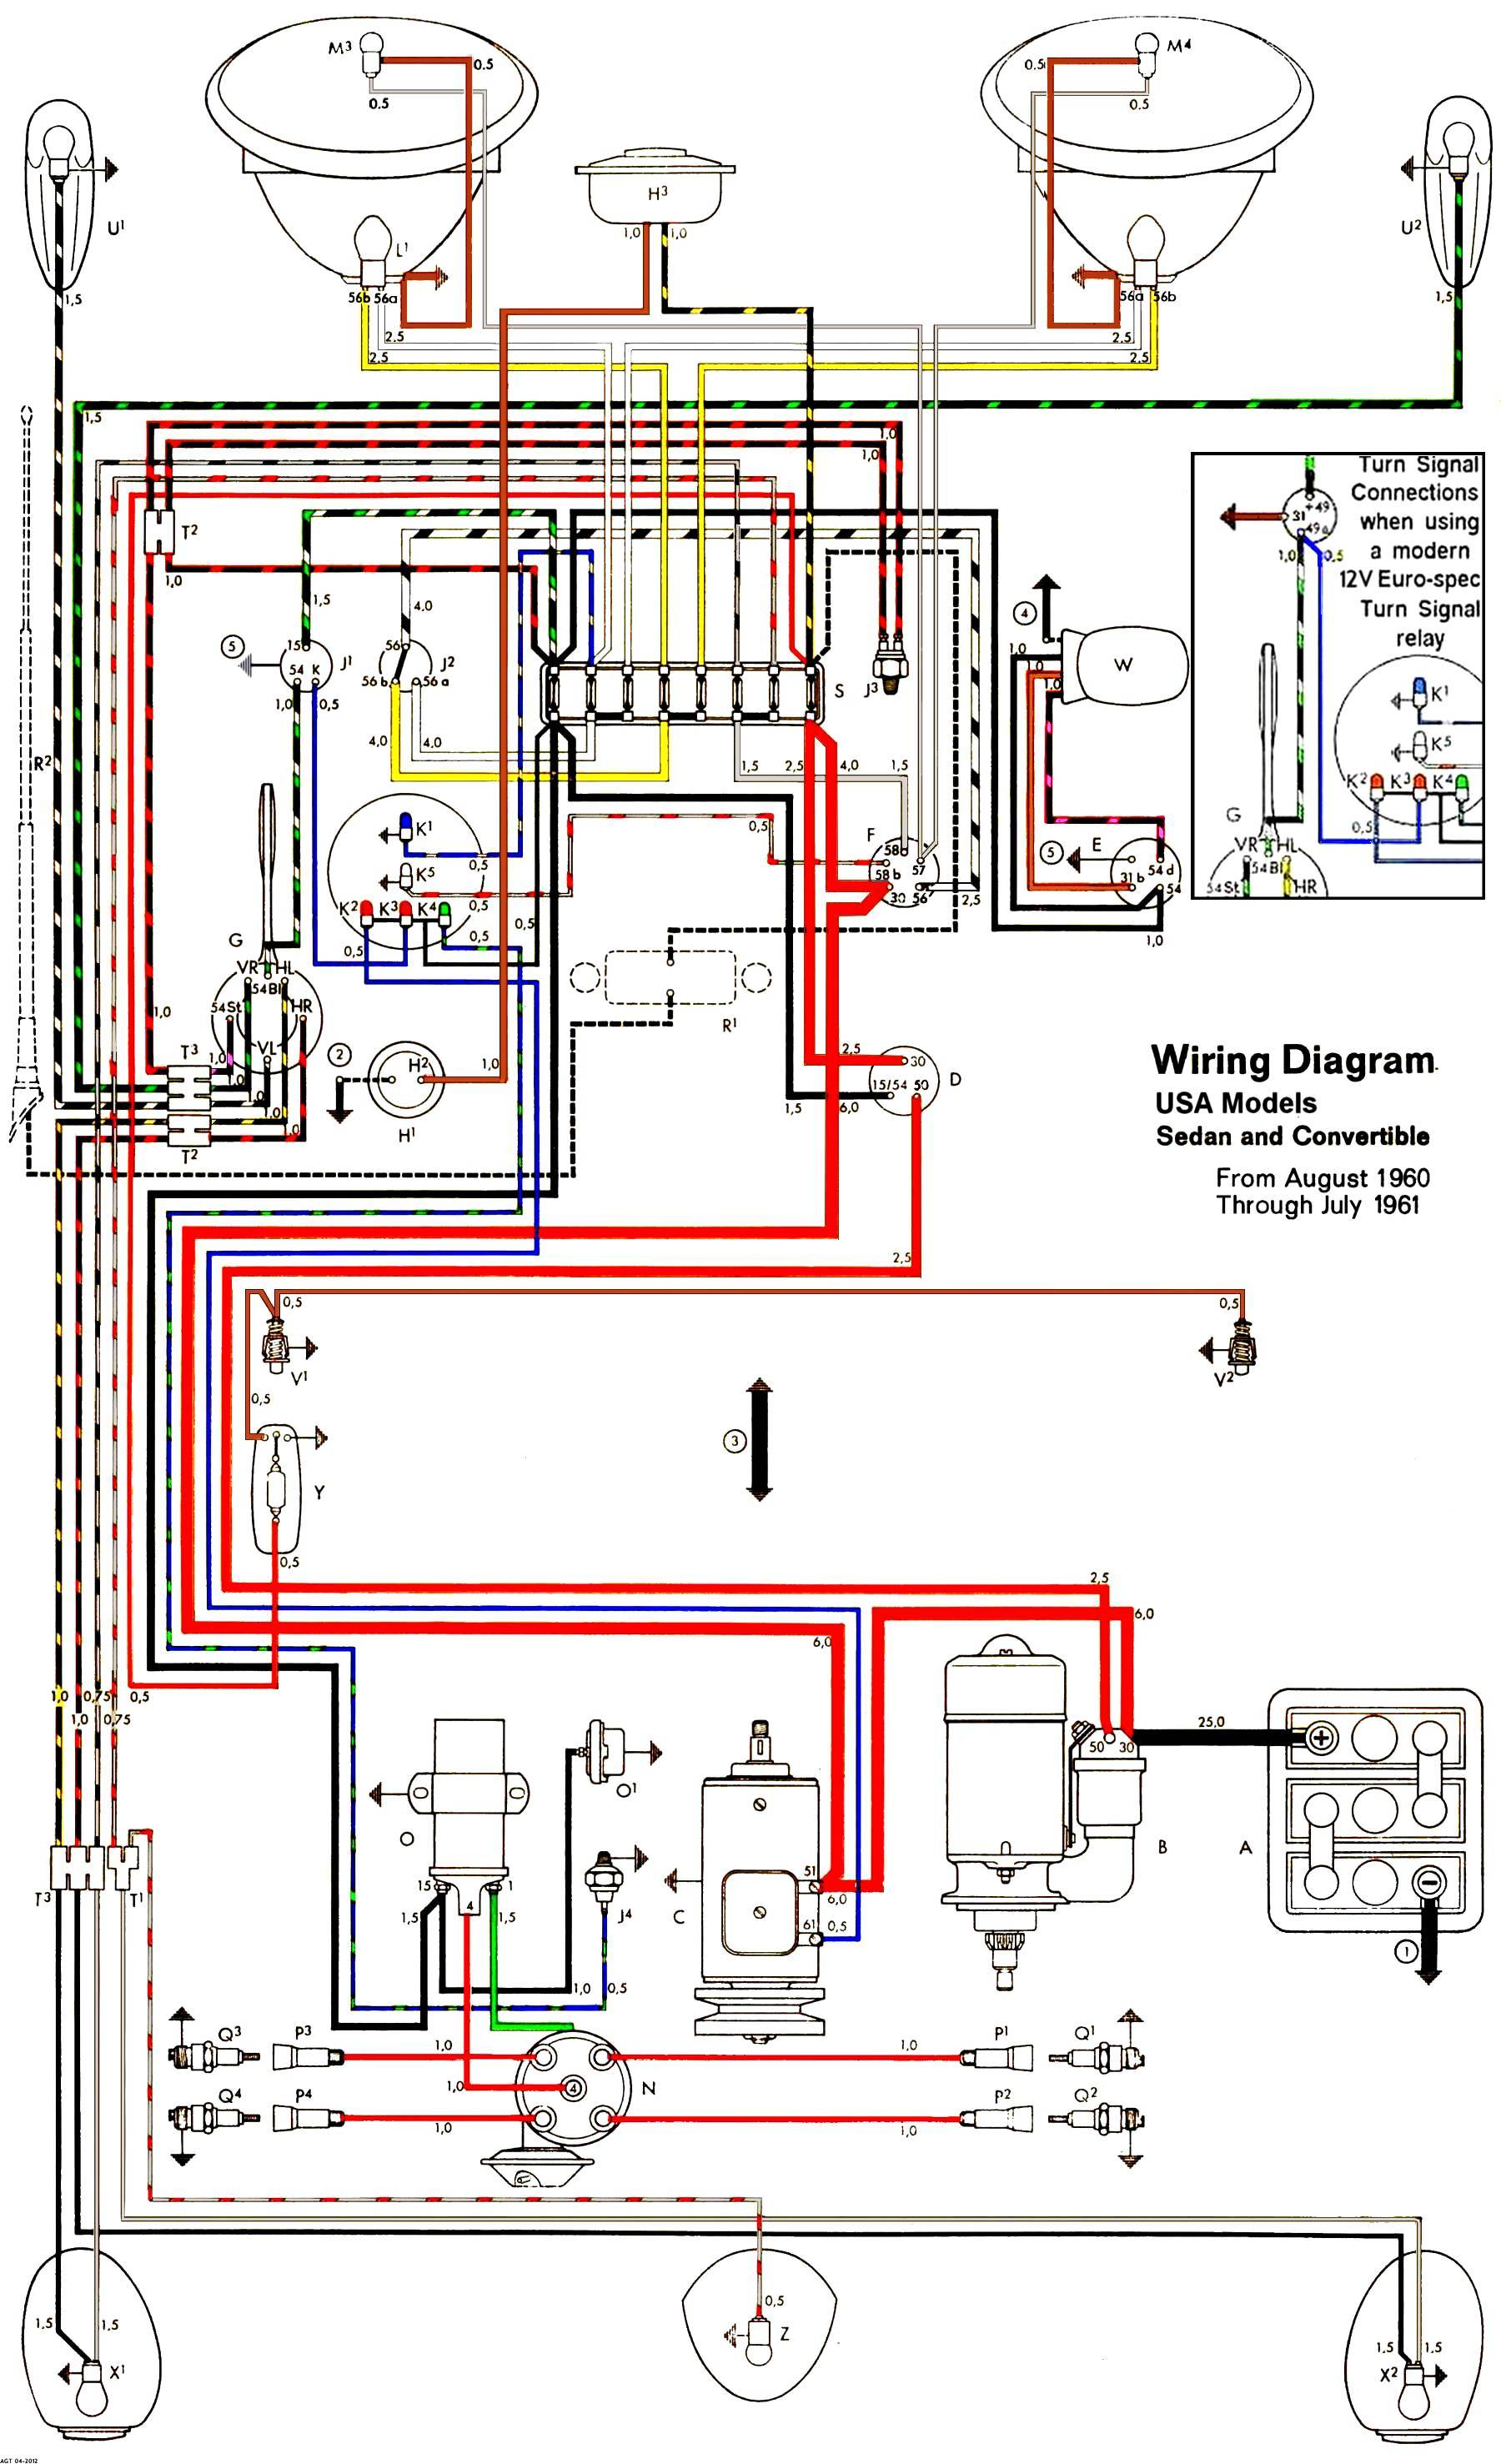 1972 Vw Wire Harness Schematic Doing Wiring Diagram The New Way Harley Audio 69 Generator Schematics Diagrams U2022 Rh Parntesis Co Radio